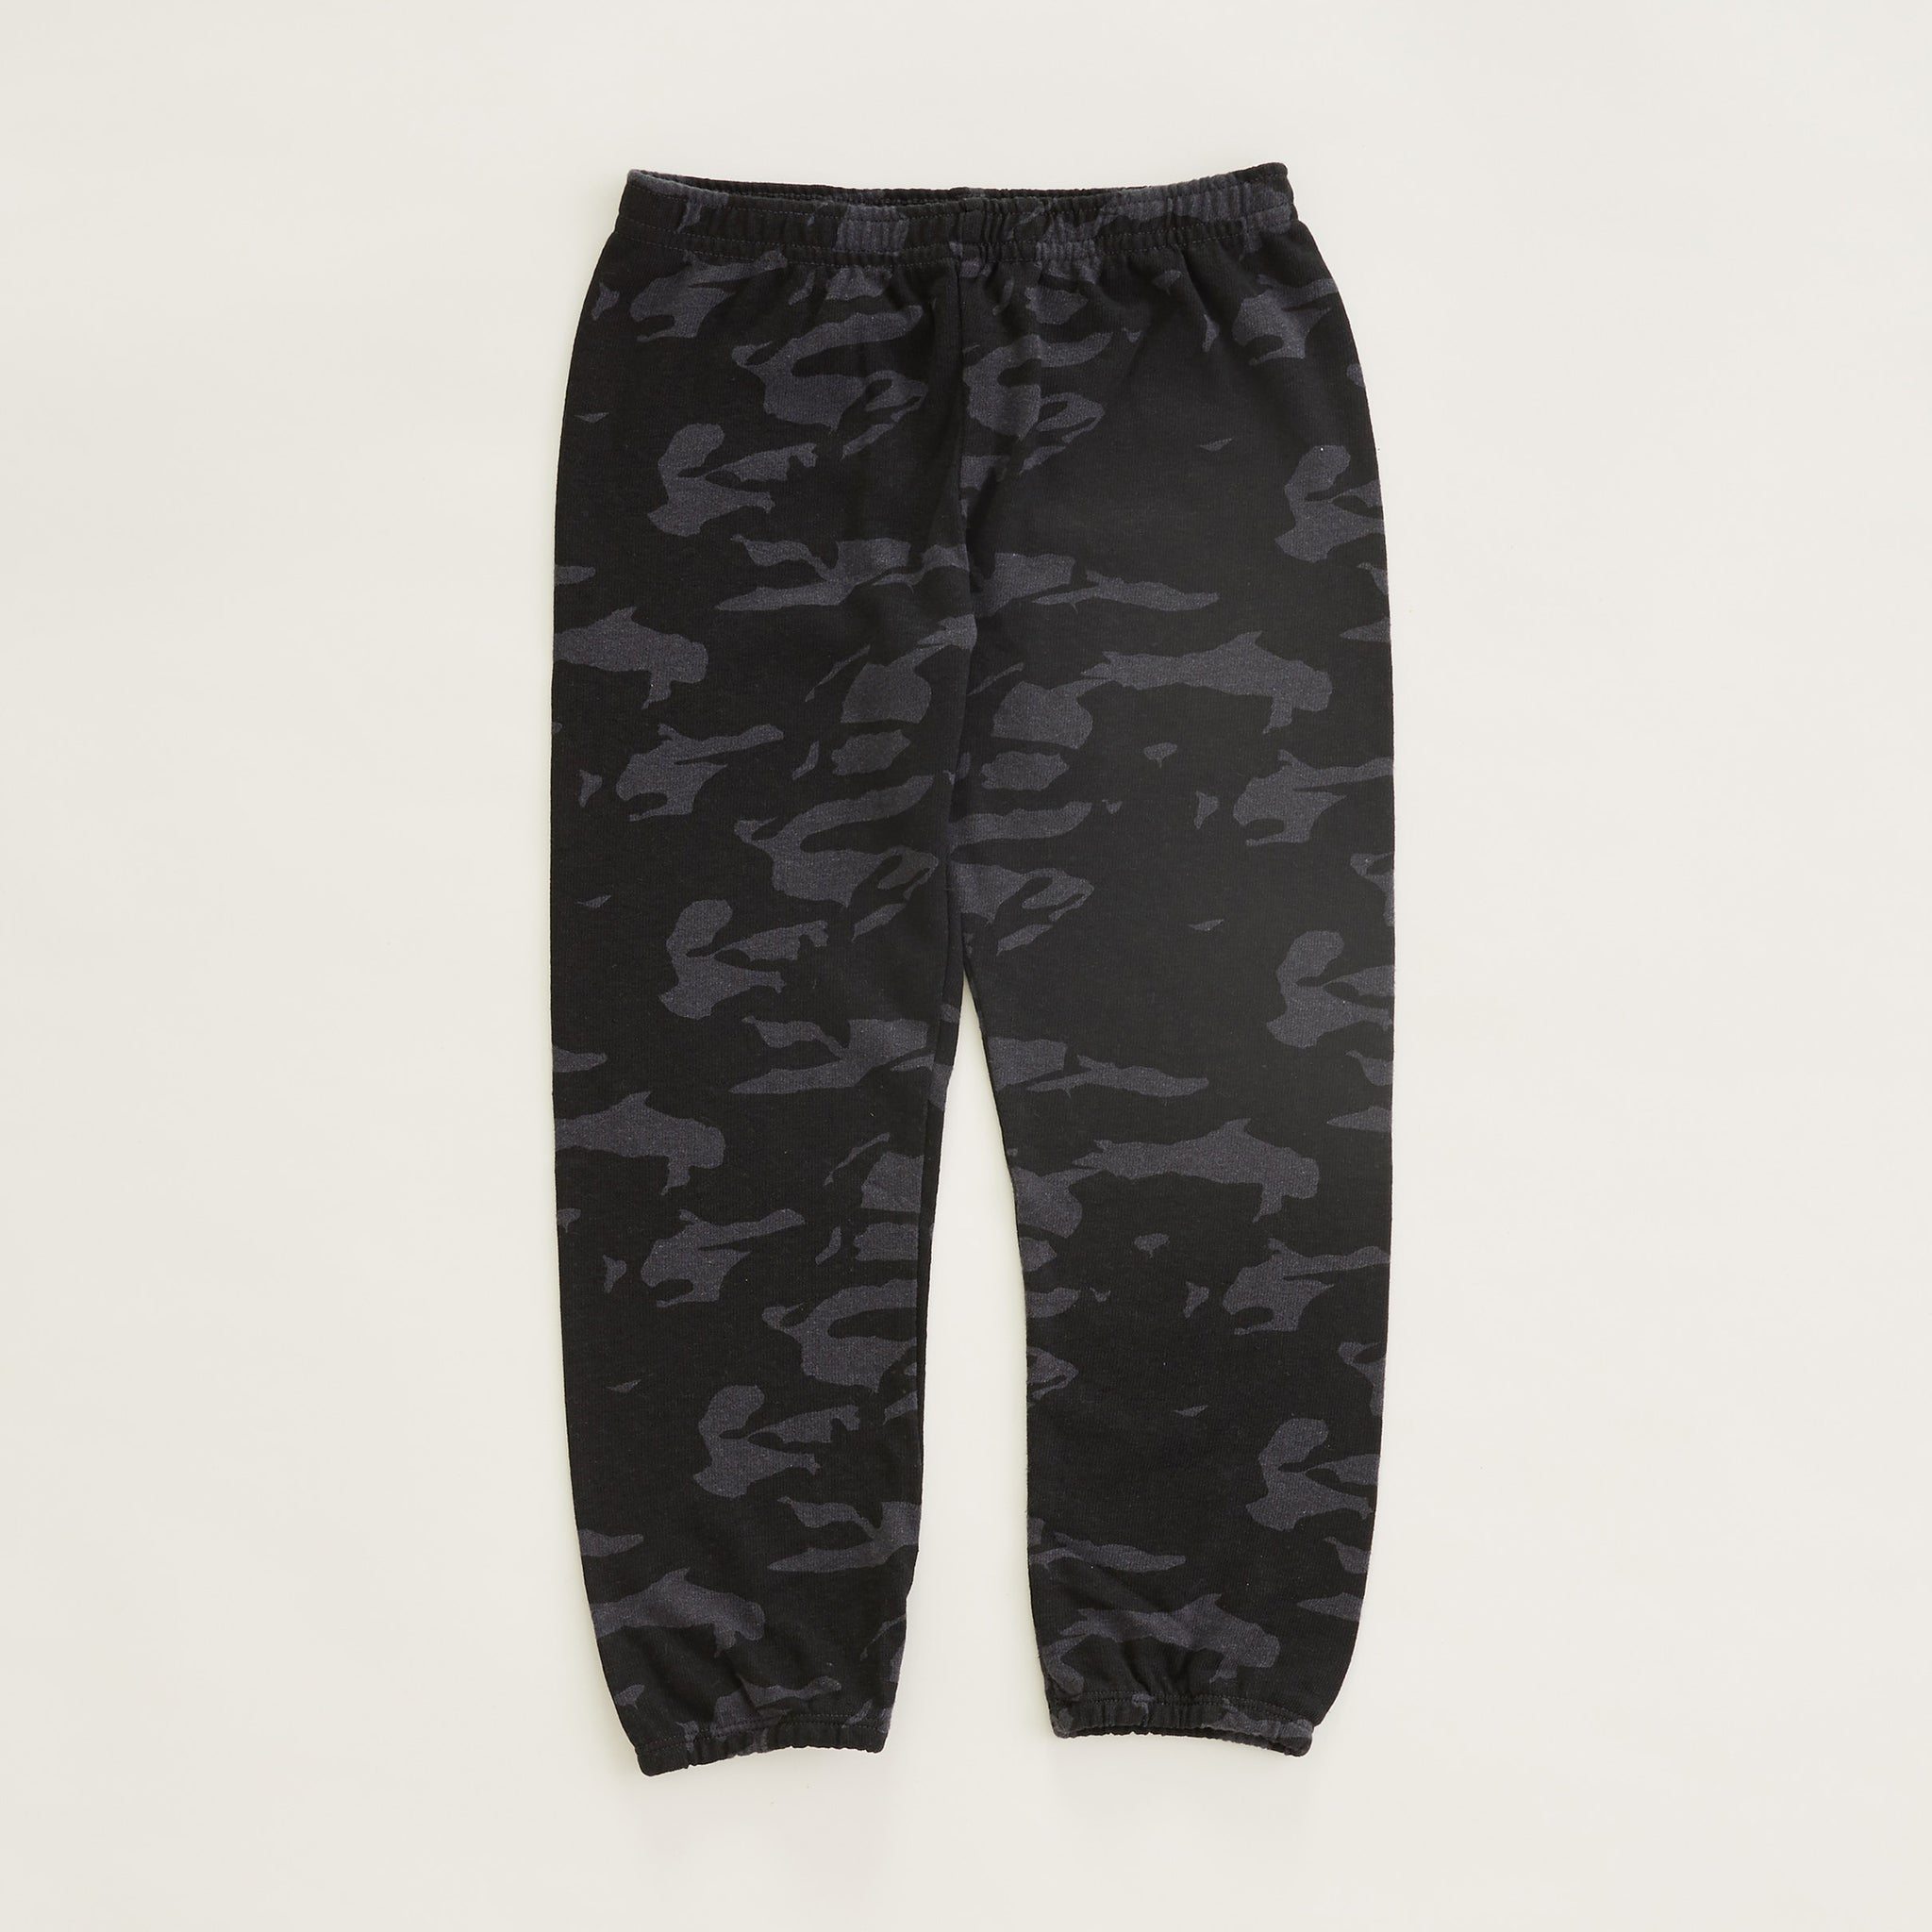 Kids Camo Elastic Waist Sweats